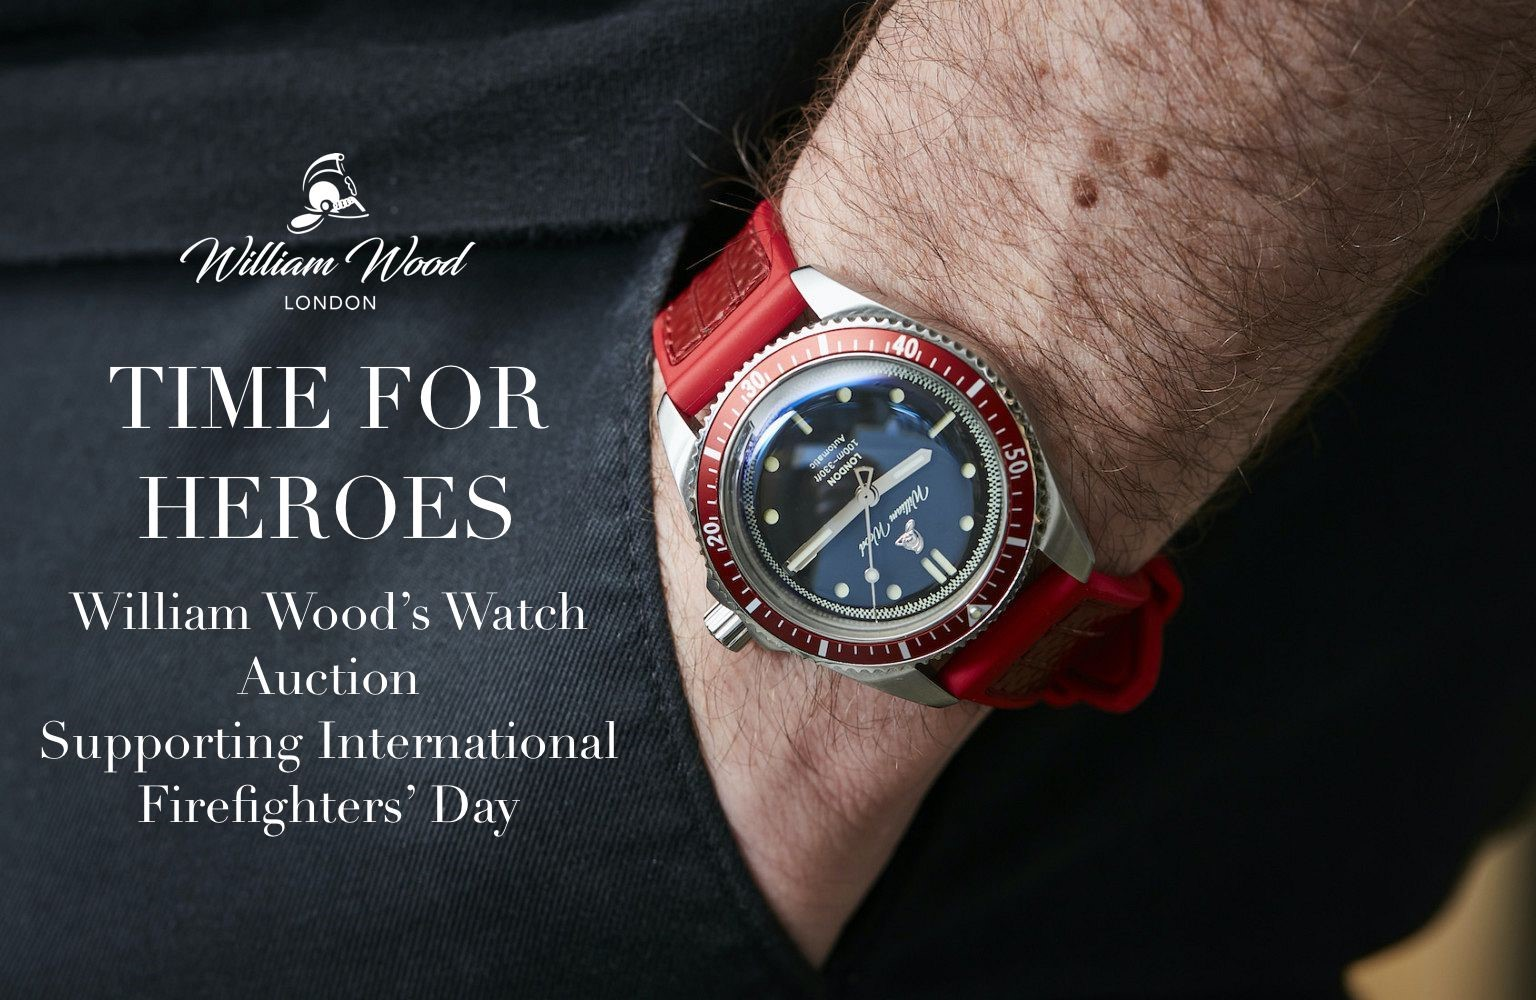 William Wood Watches' charity auction